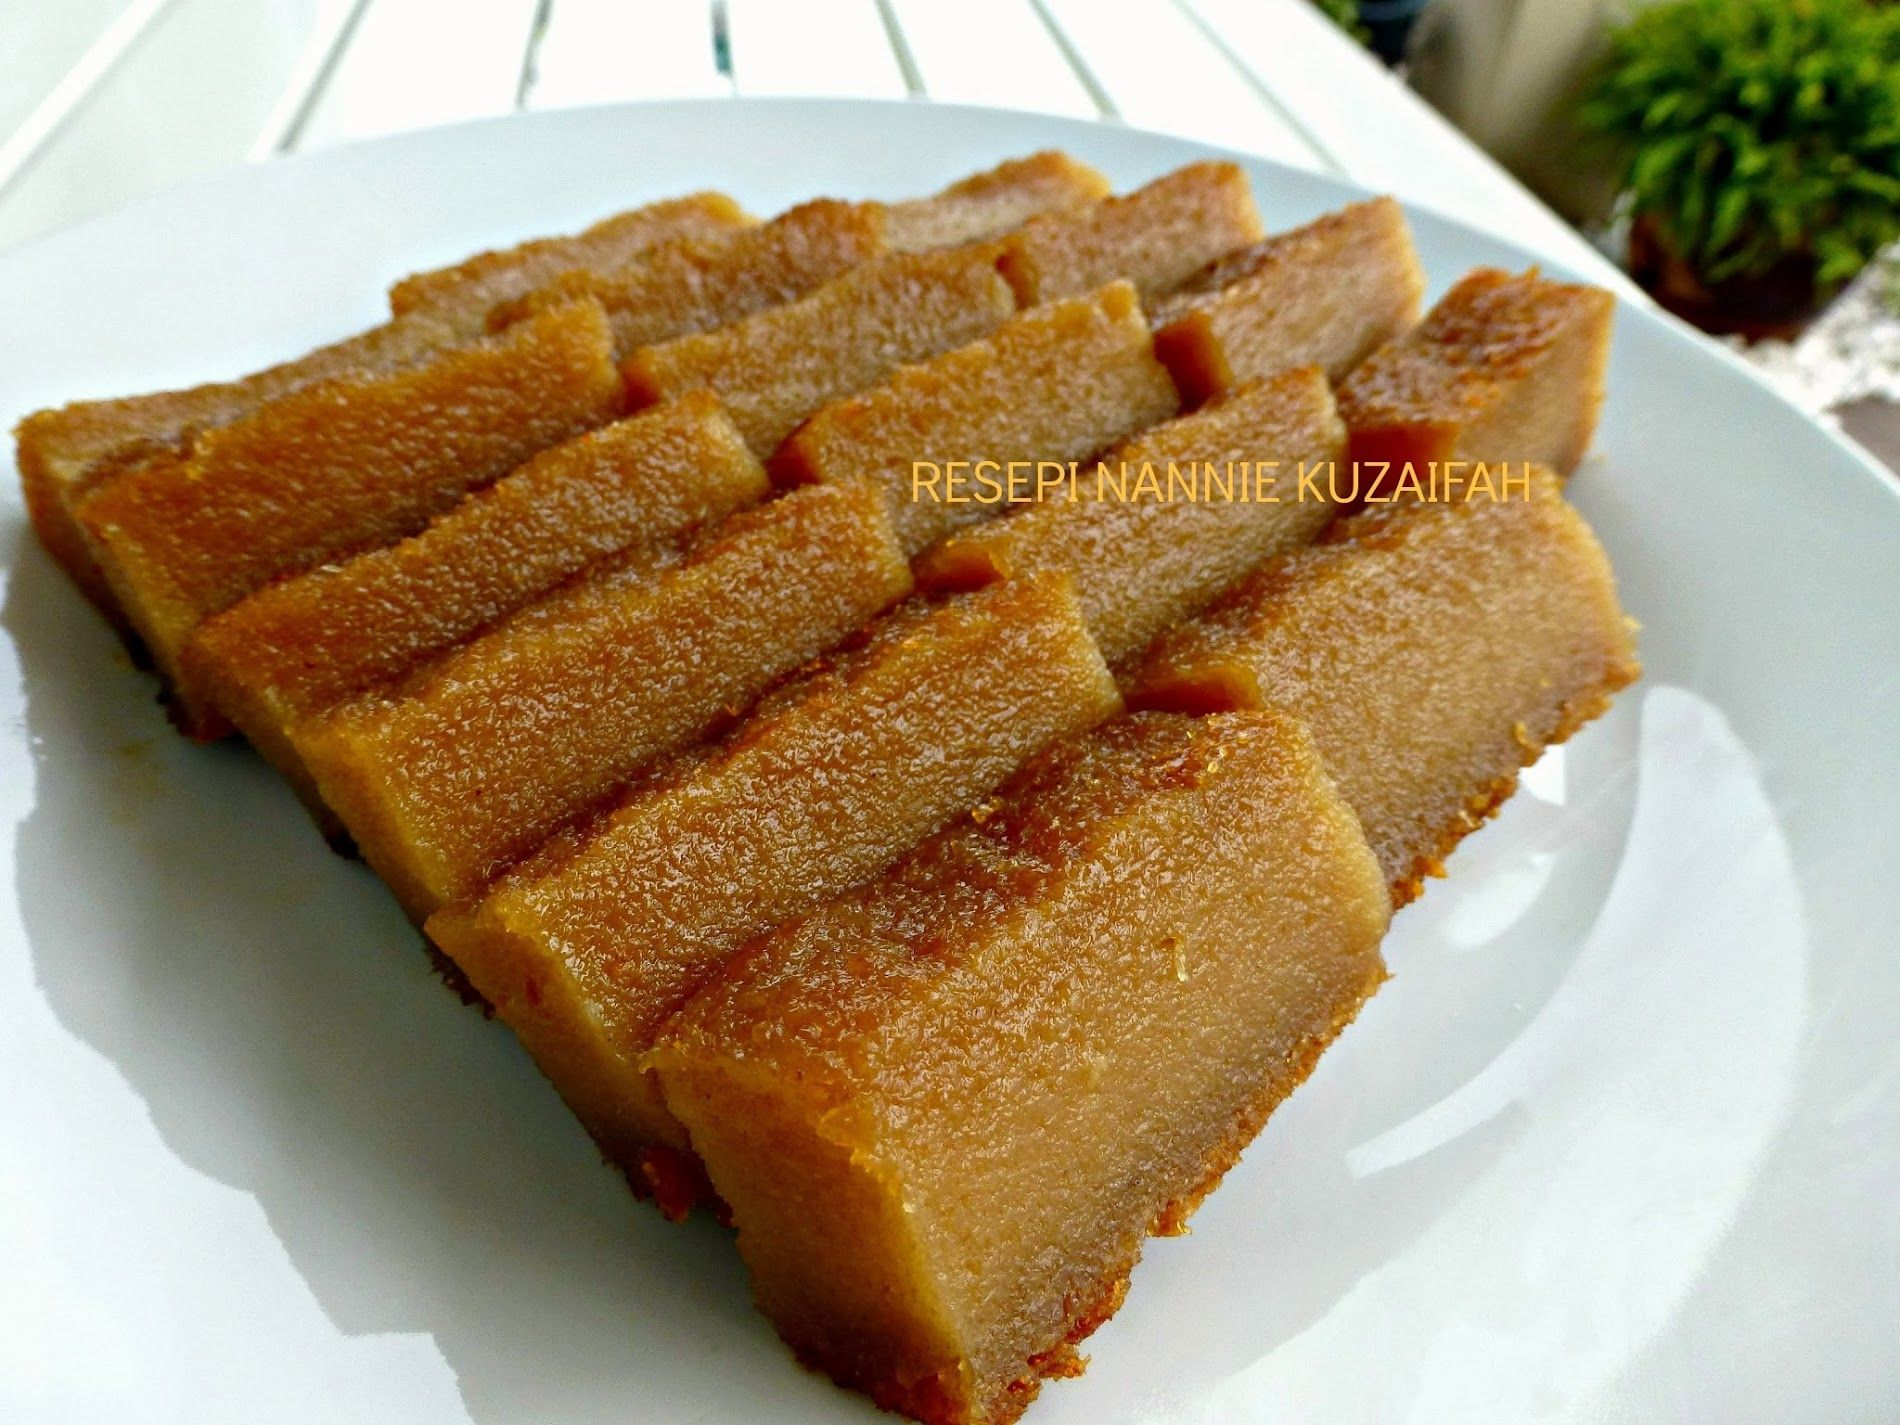 Resepi Nennie Khuzaifah Bingka Ubi Kayu Recipes Food Desserts